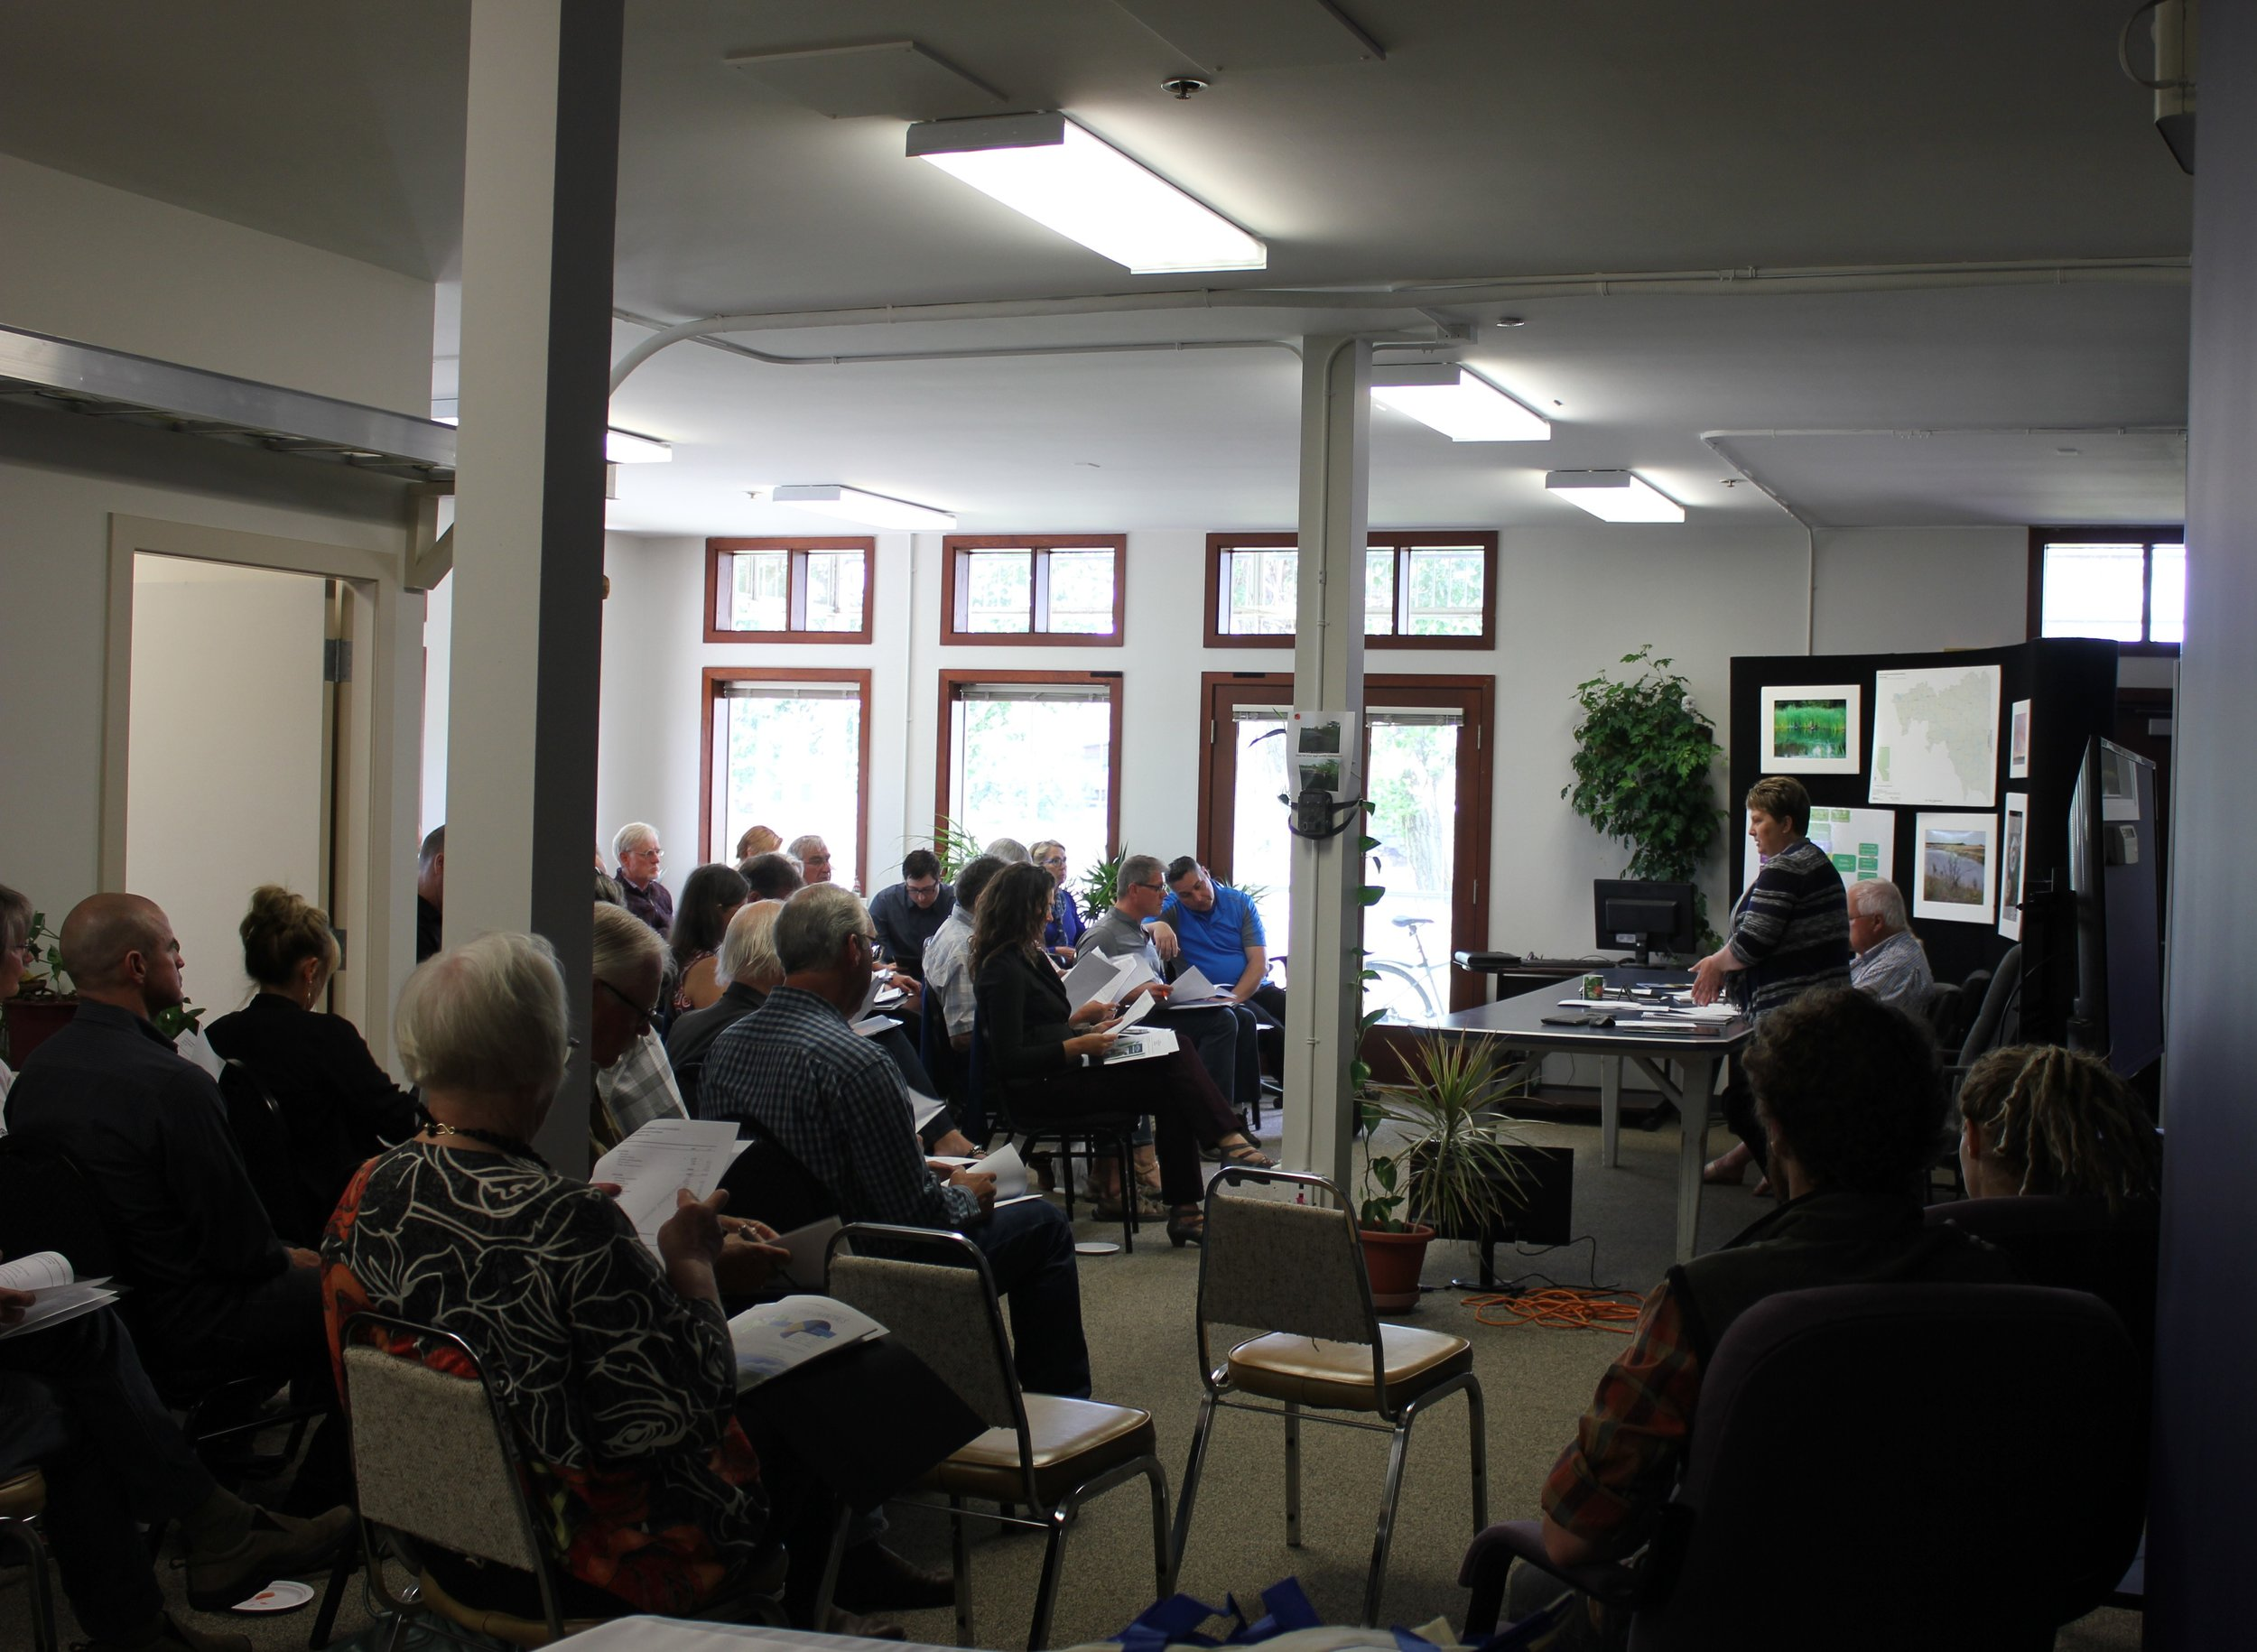 The BRWA's AGM in June in their new office space.